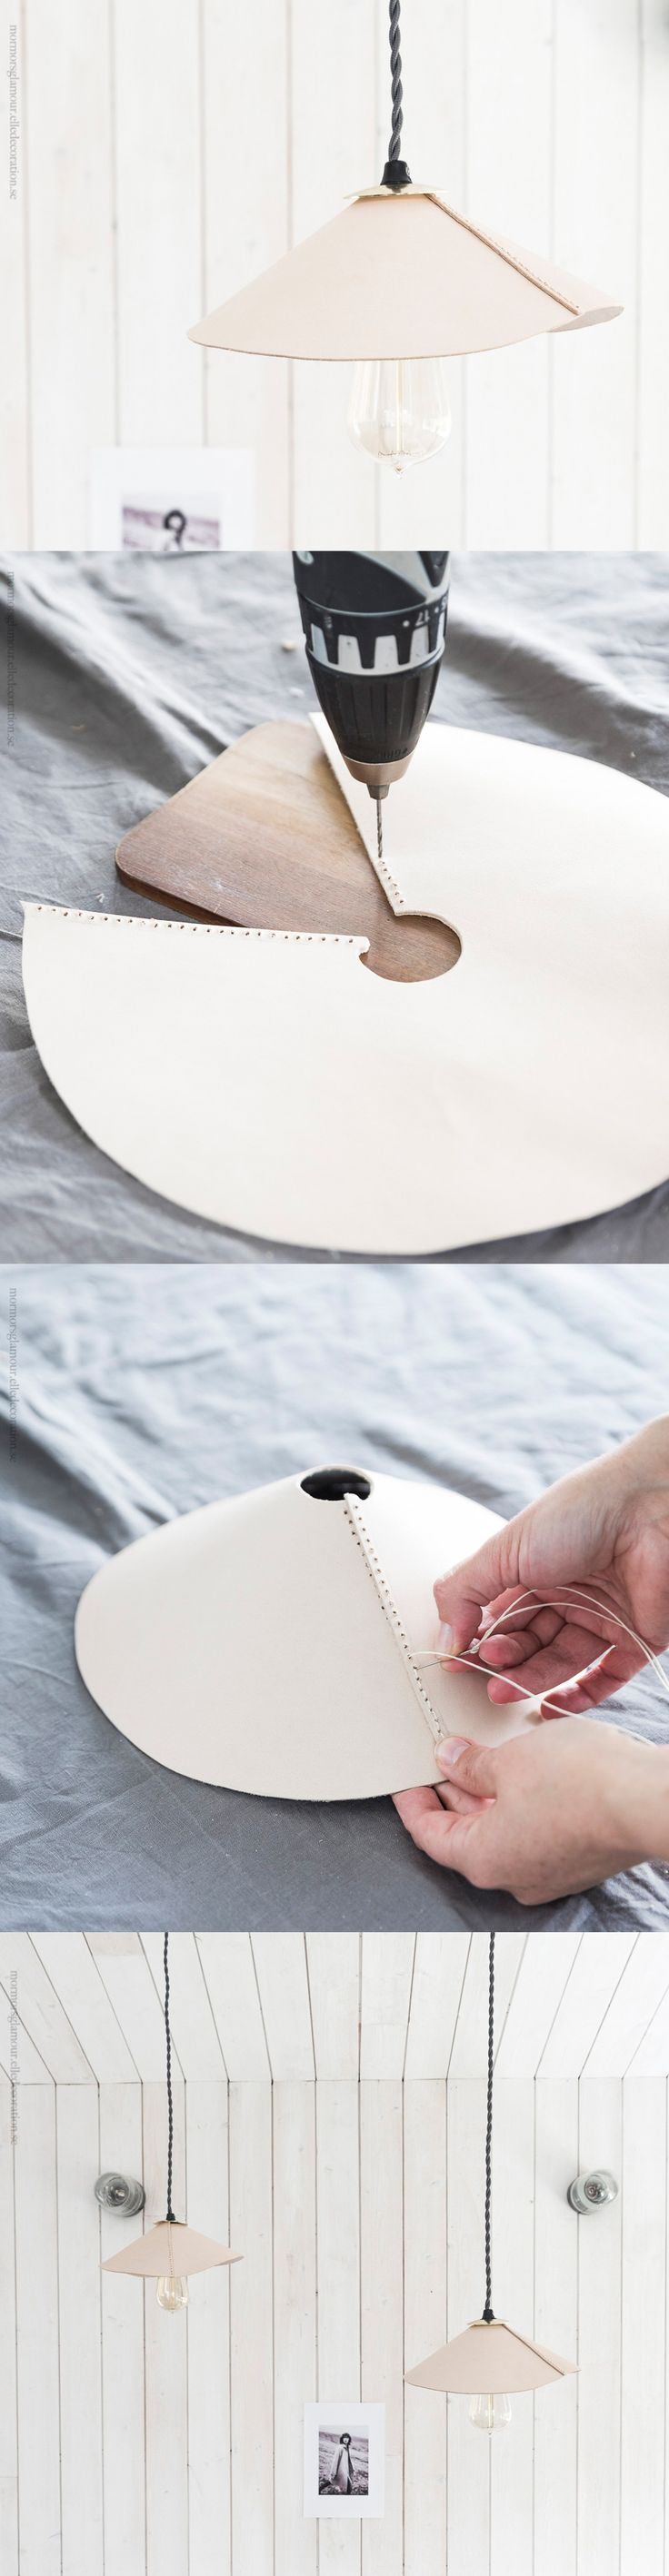 How to make a lampshade in leather. Gloucestershire Resource Centre http://www.grcltd.org/scrapstore/